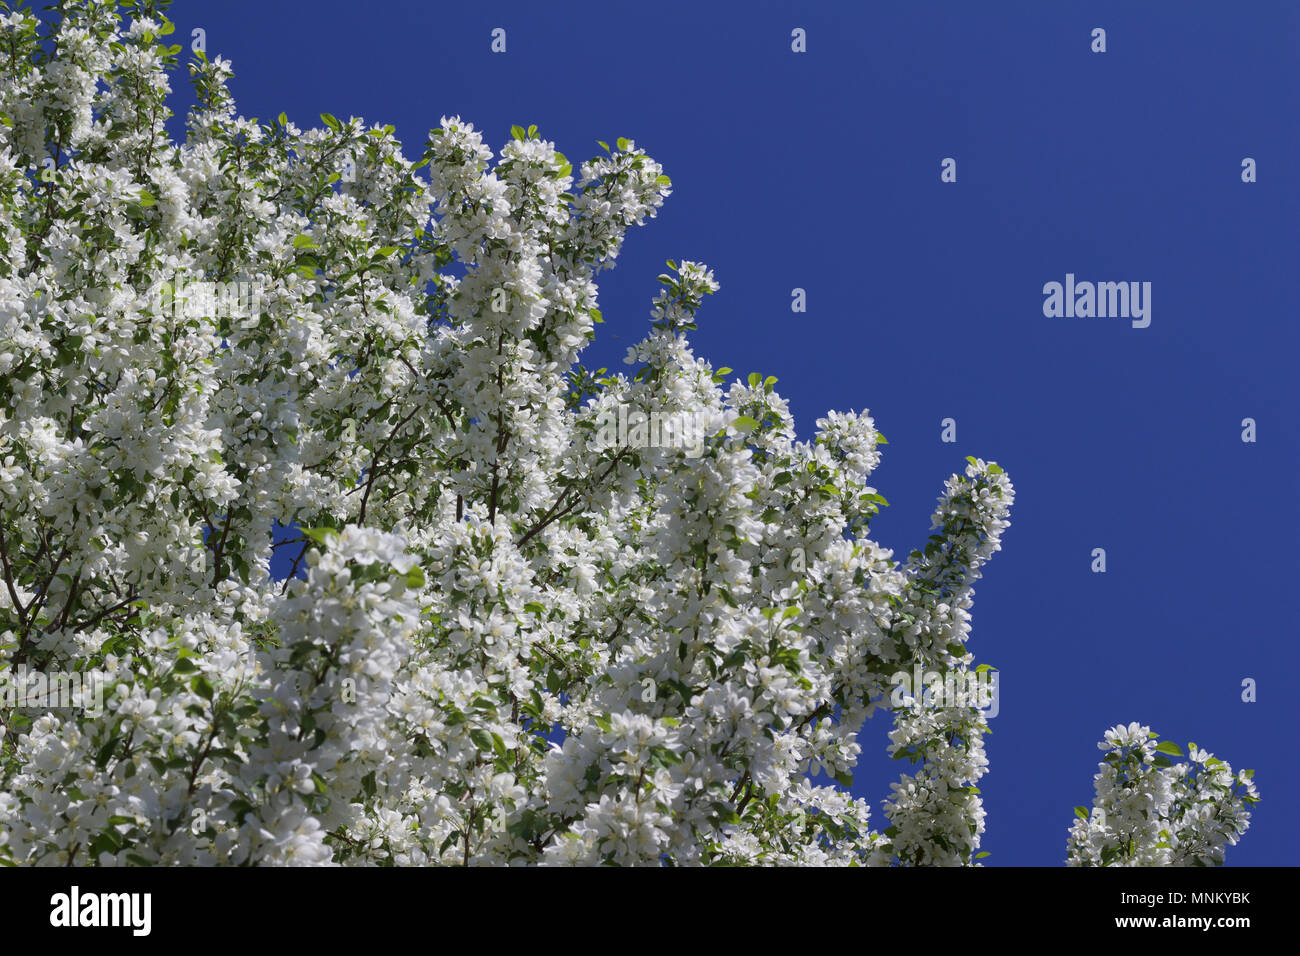 Bright snow white blossoms on a spring blooming ornamental crabapple bright snow white blossoms on a spring blooming ornamental crabapple tree with blue sky background izmirmasajfo